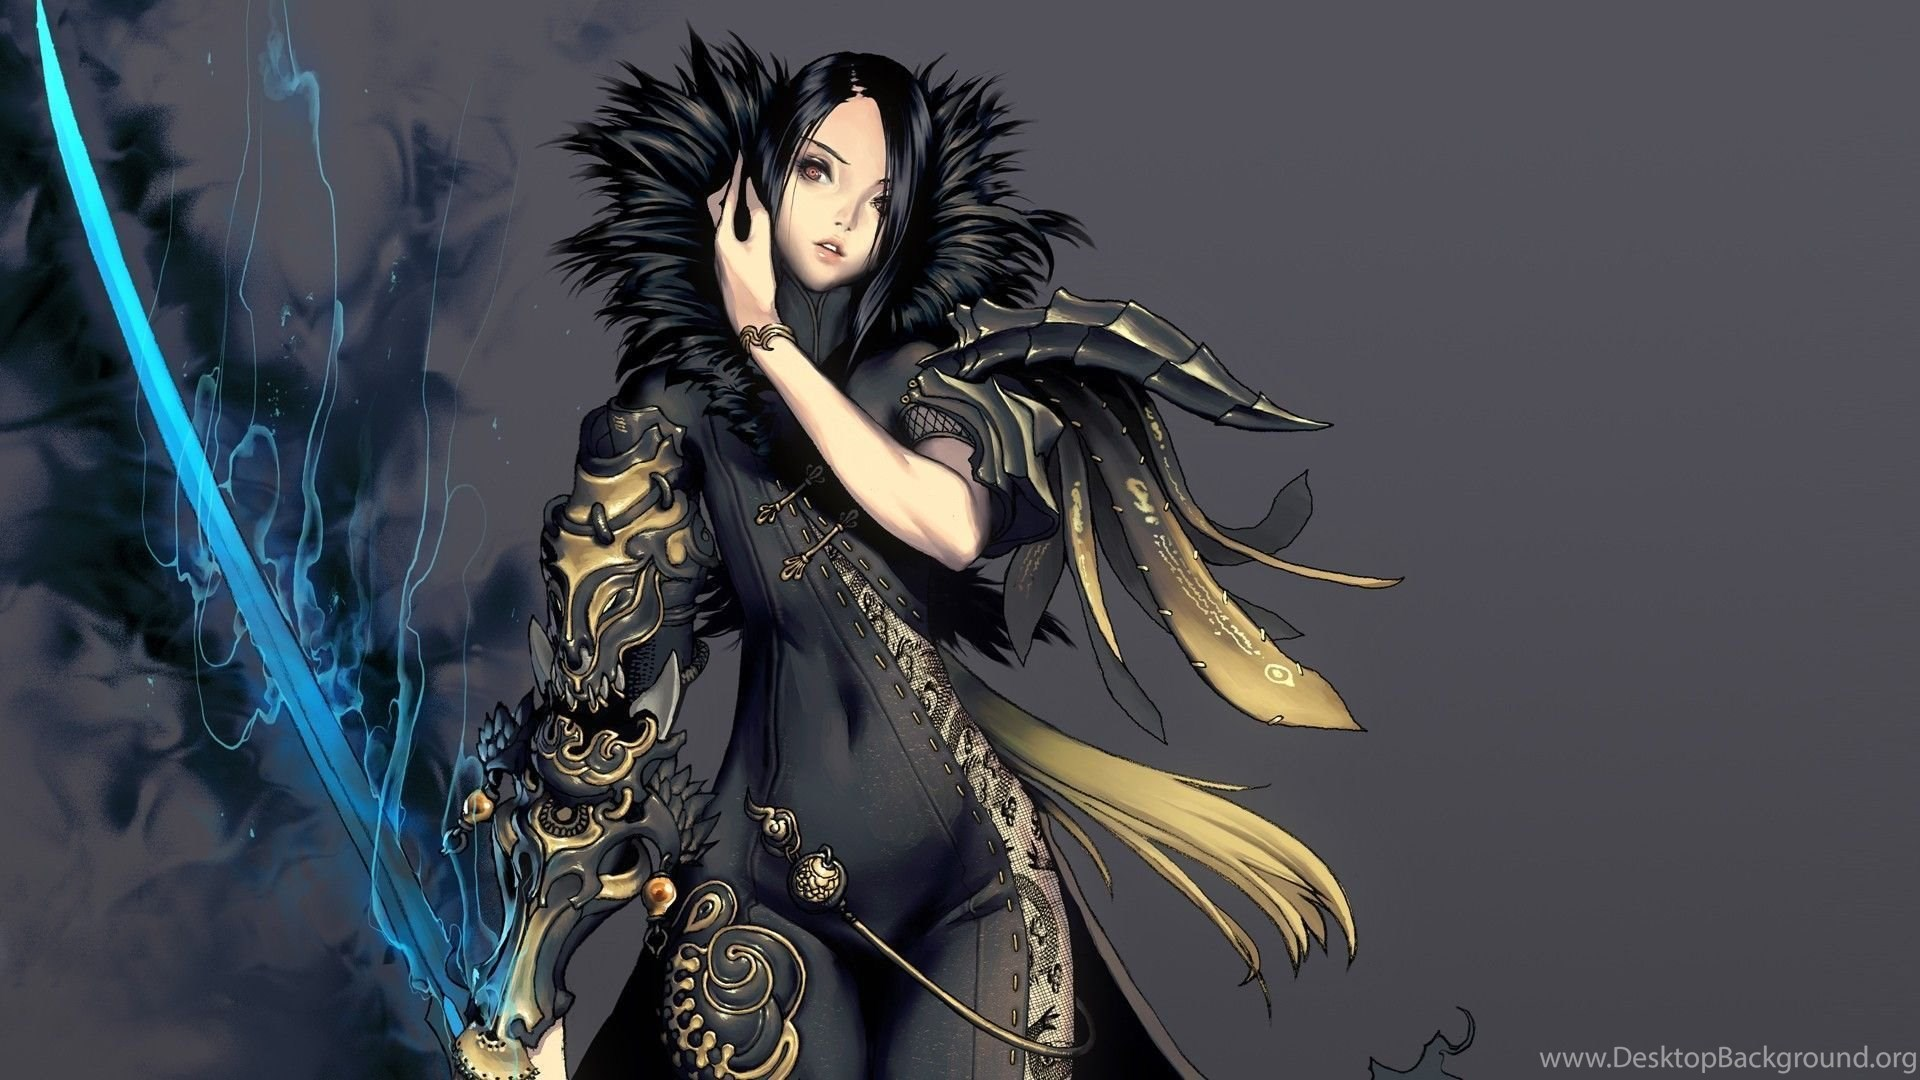 Gallery For Blade And Soul Wallpapers Hd Desktop Background